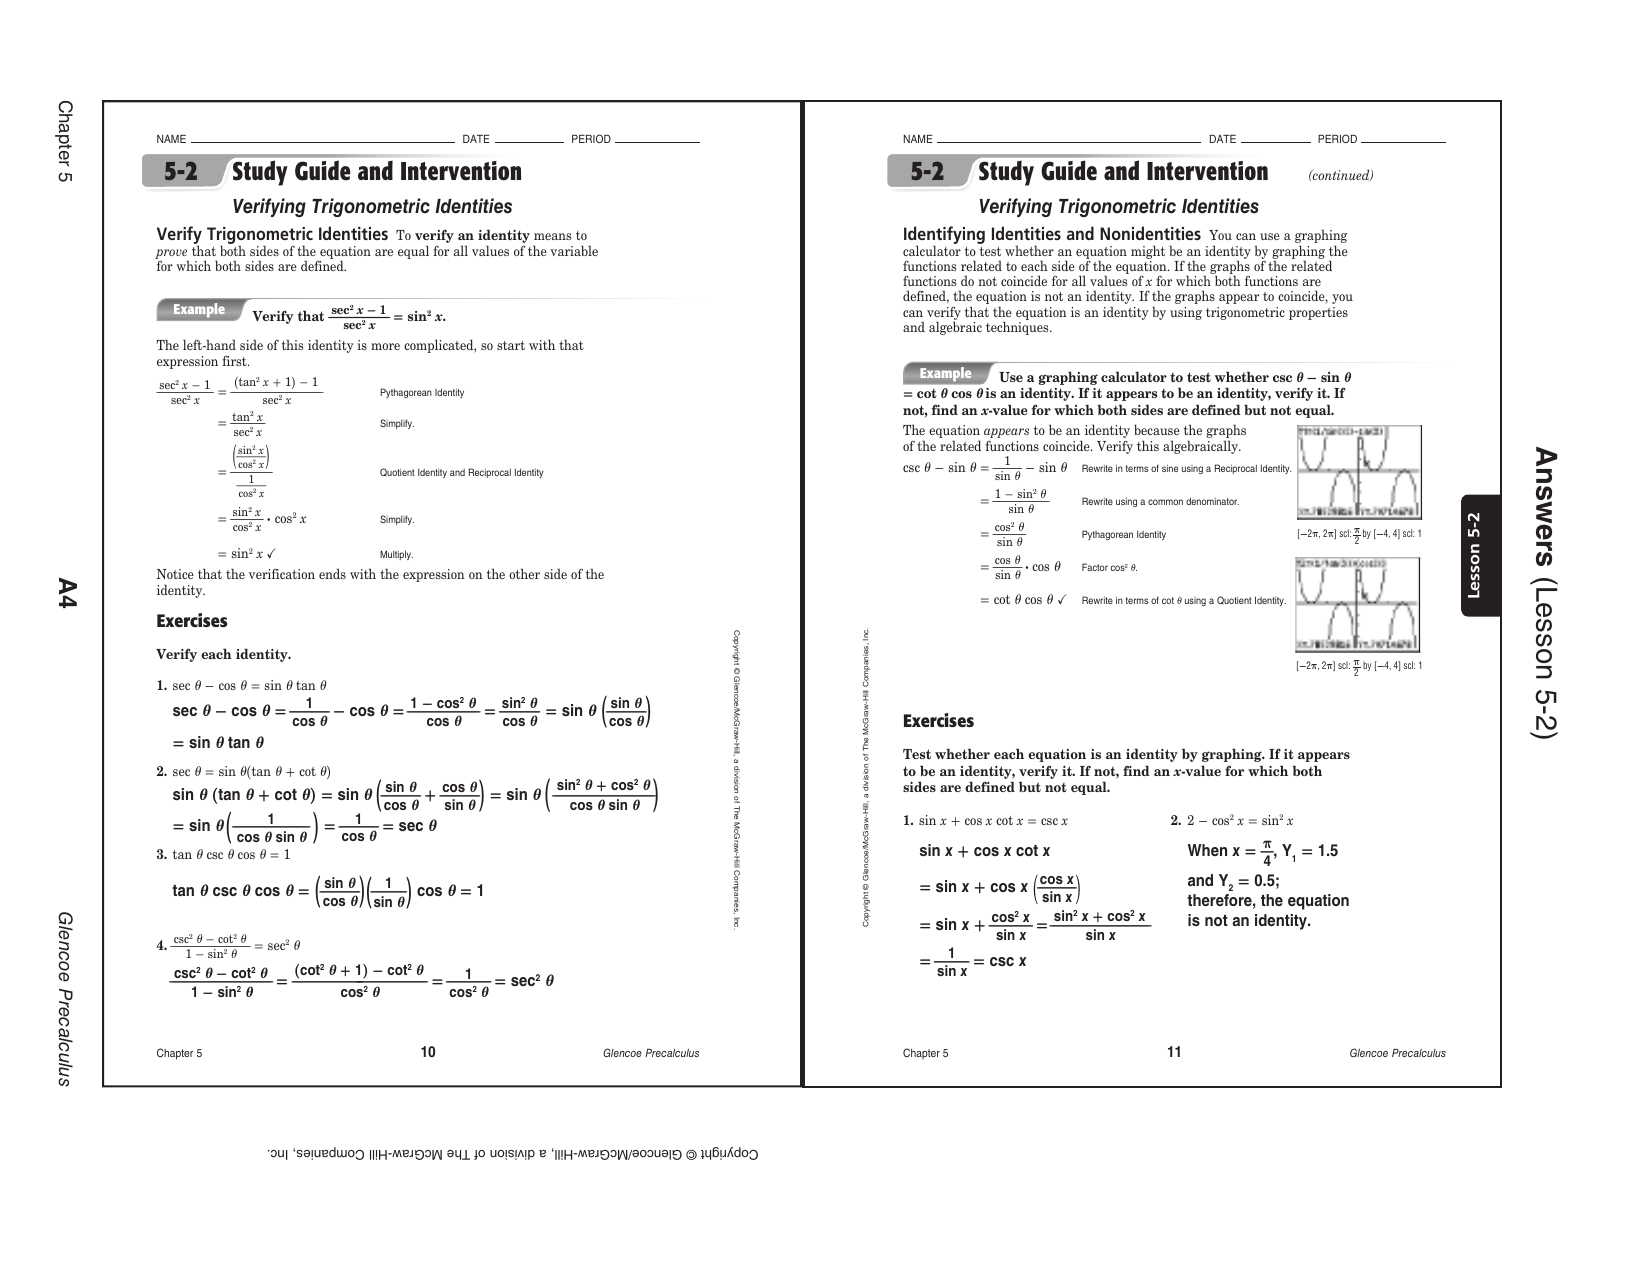 worksheet 5.3 Solving Trig Equations Practice Worksheet 1 Answers solving trig equations practice worksheet precalculus answers 5 3 trigonometric tessshlo